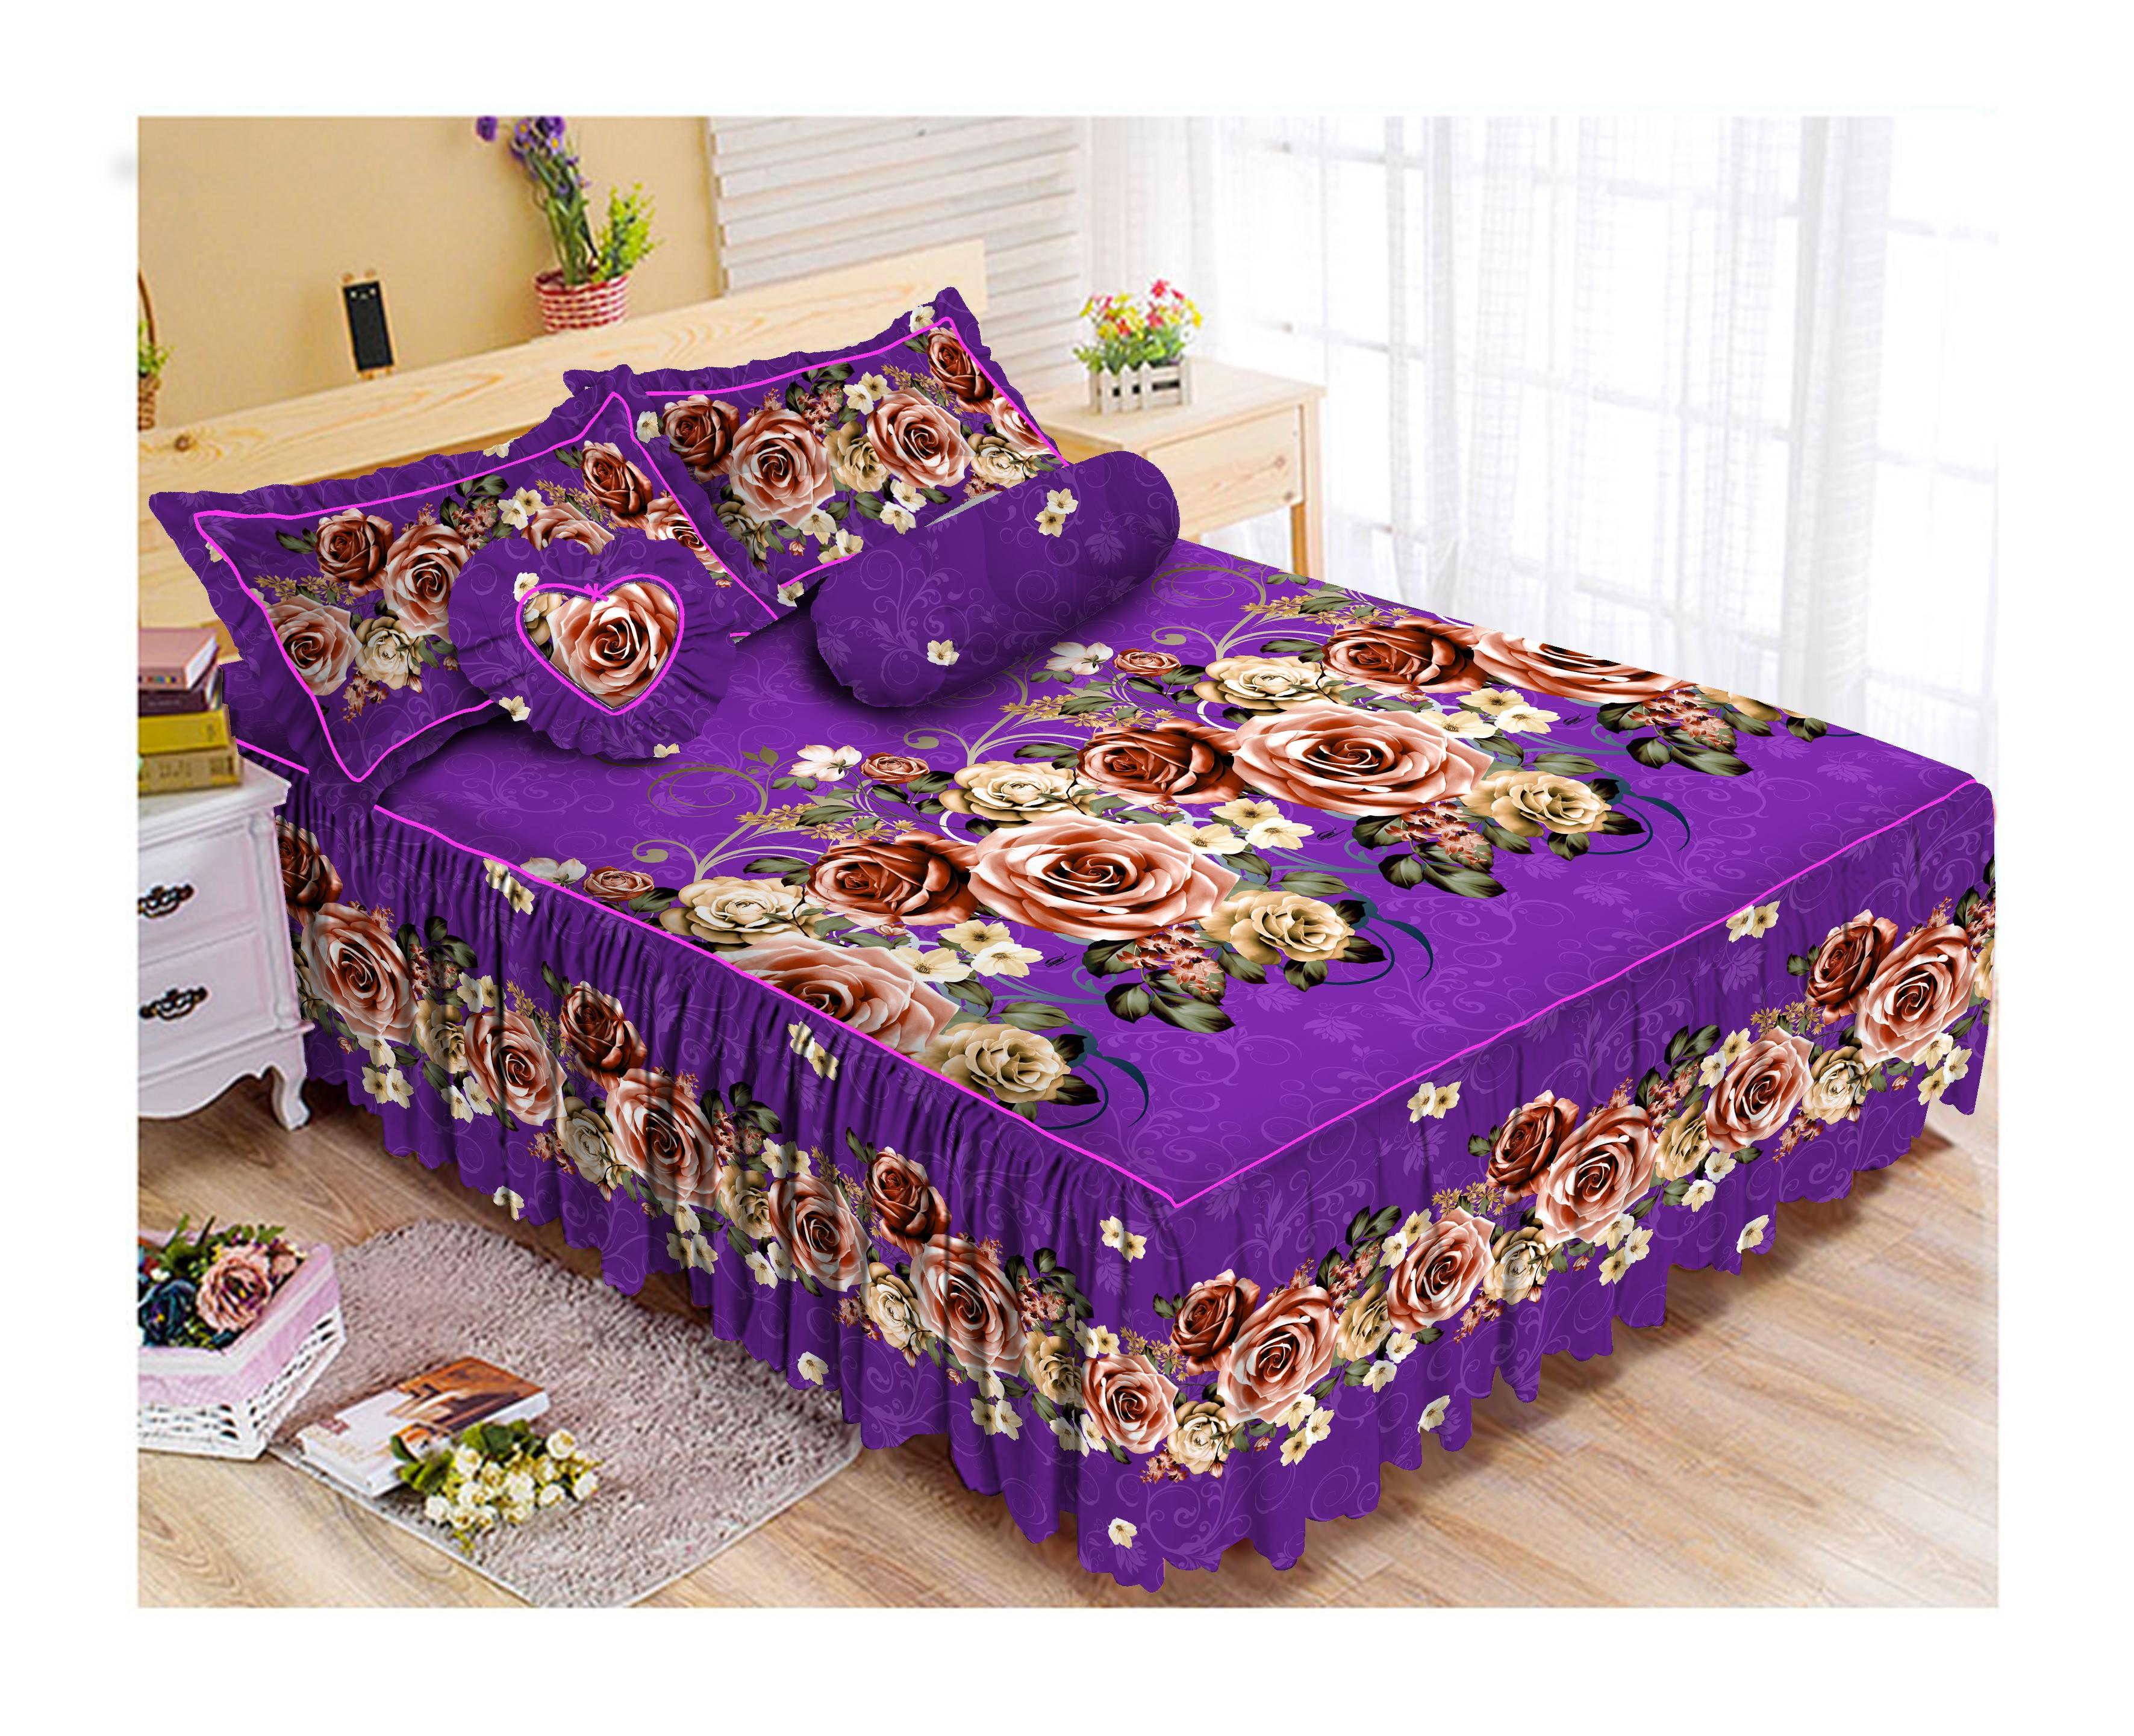 Kintakun Luxury Sprei Rumbai - 180 x 200 B2 (King) - The Royals